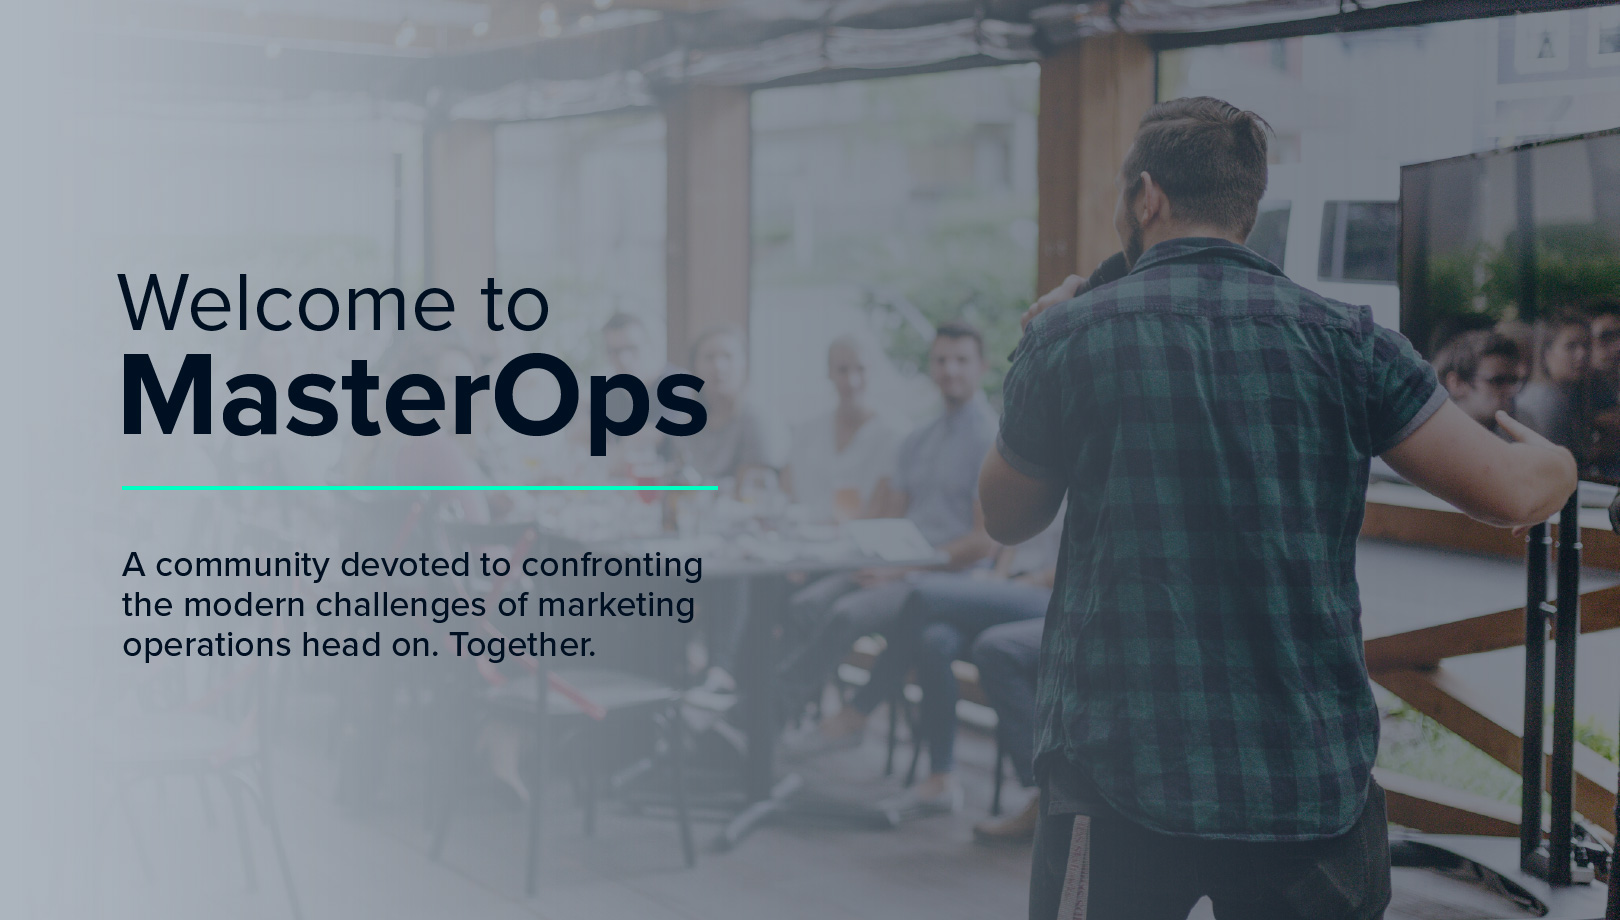 Announcing the New MasterOps Community